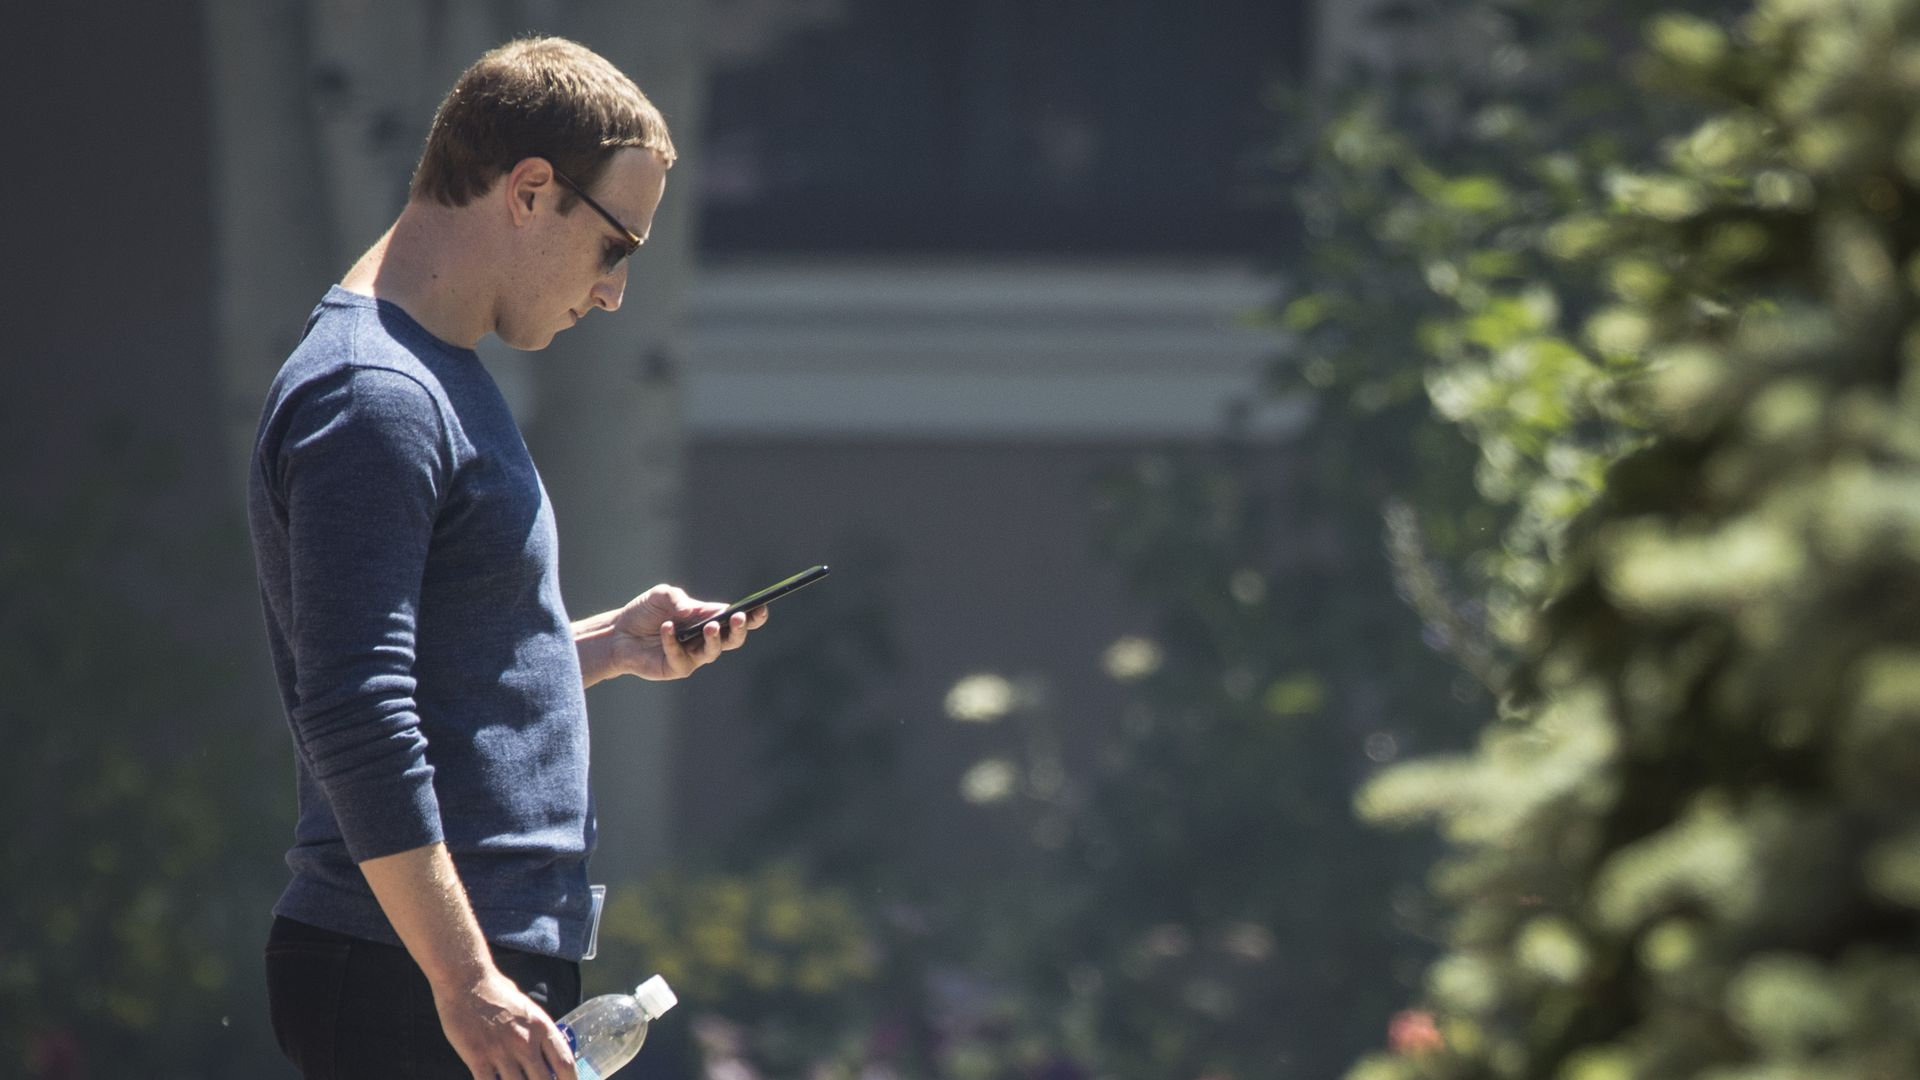 Mark Zuckerberg looks at his phone.